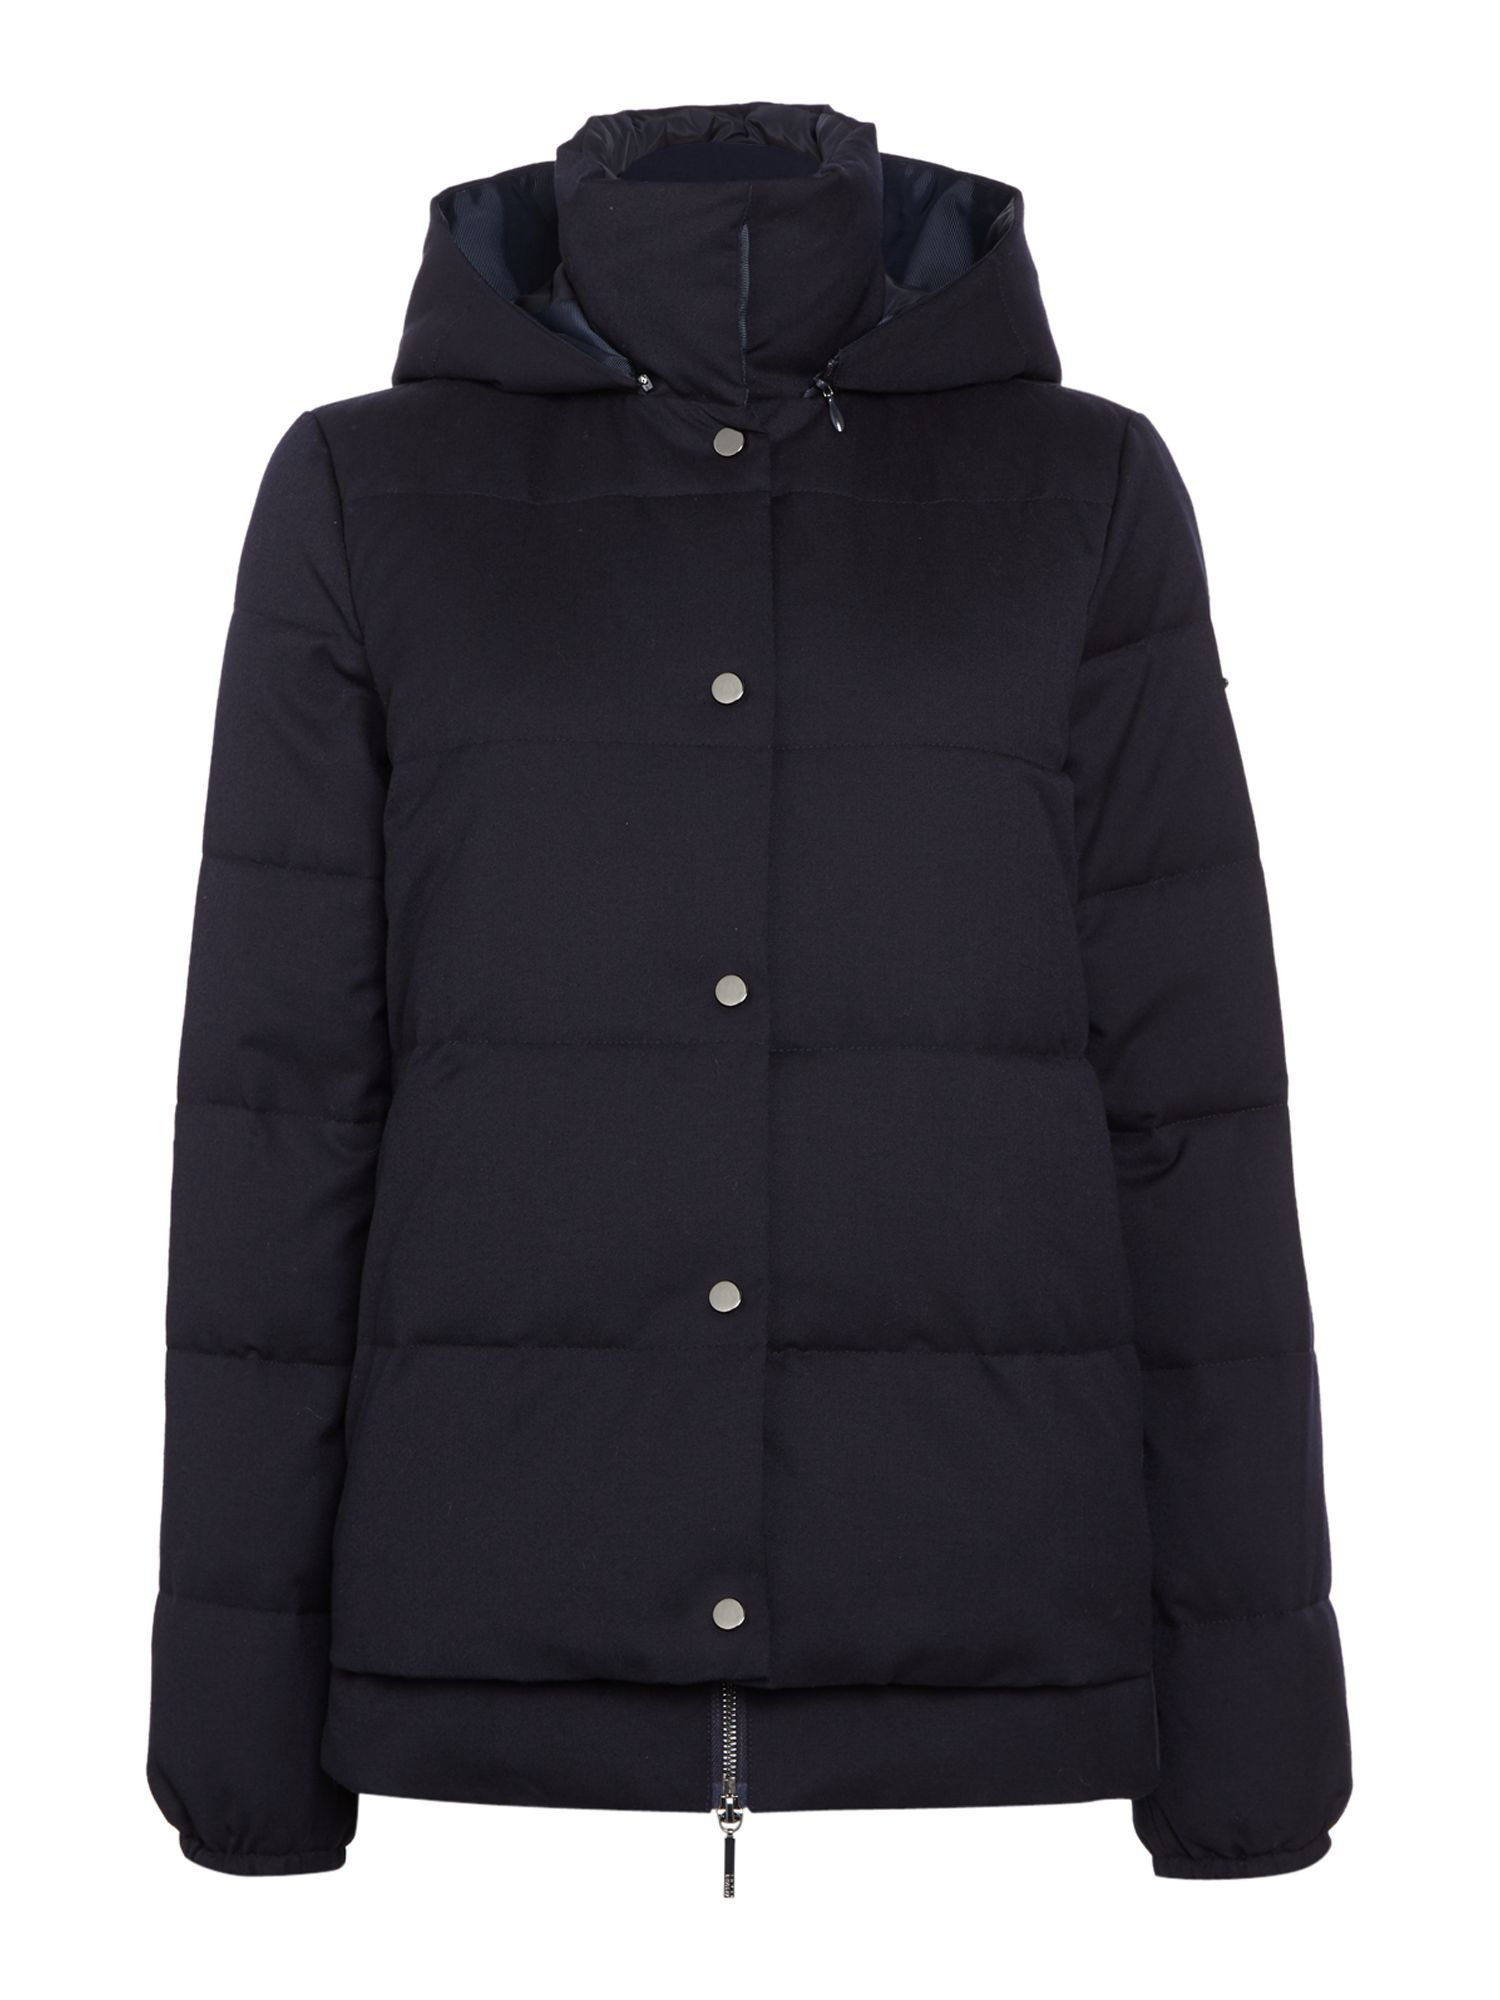 Armani jeans ladies navy coat